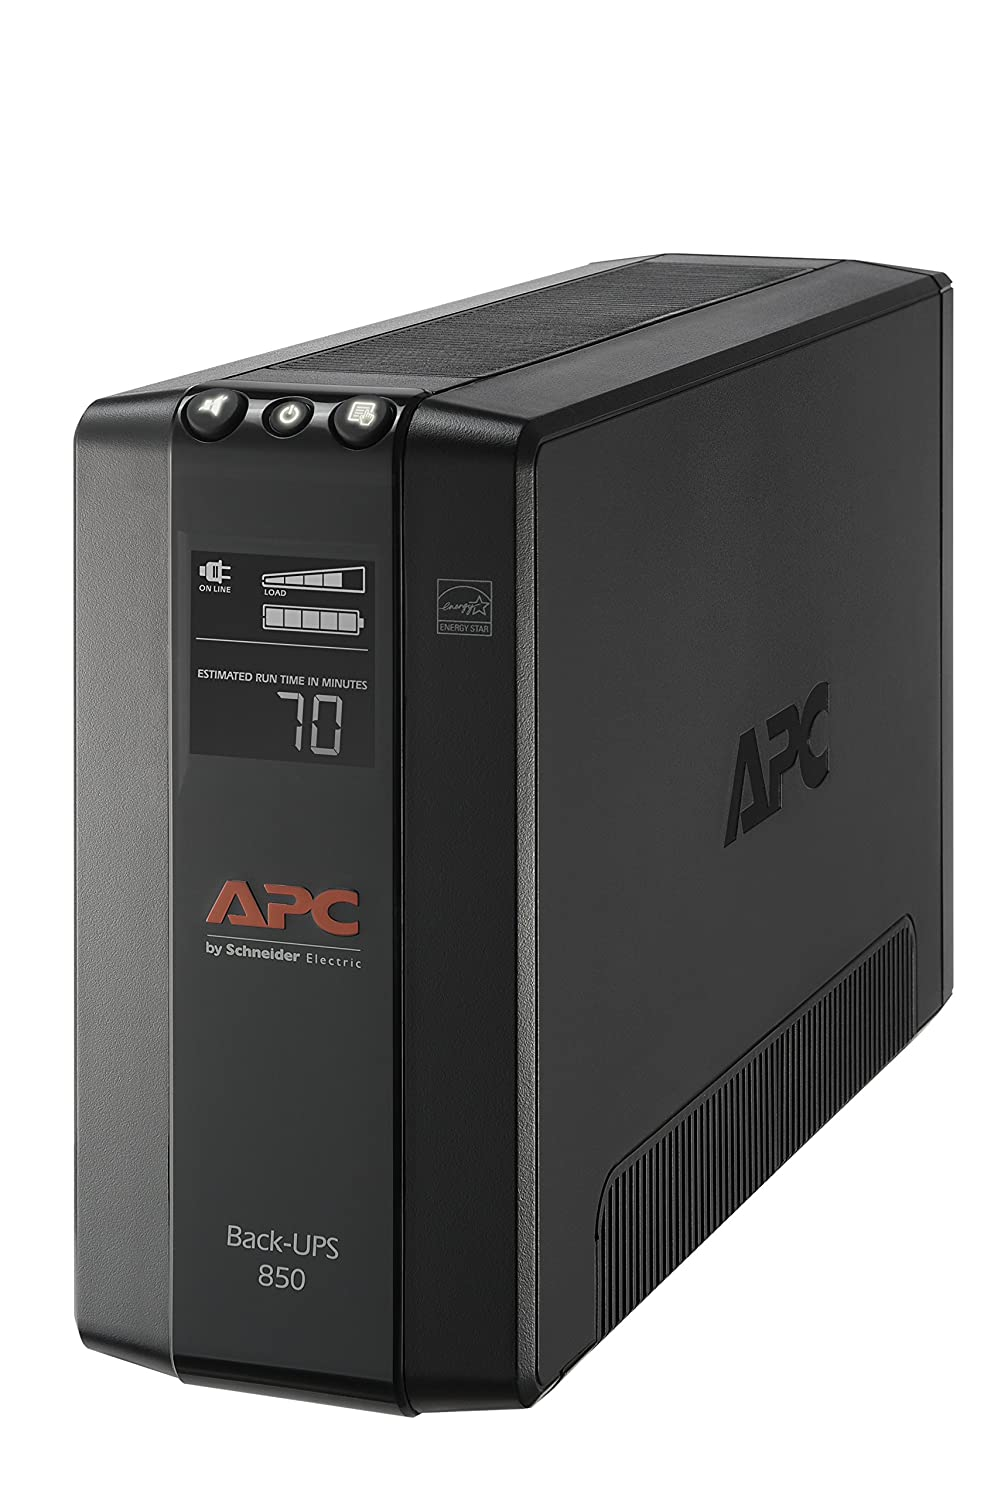 Apc Back Ups Pro 700va Battery Backup Surge Automatic Voltage Regulator With Protection Circuit Free Electronic Protector Br700g Home Audio Theater